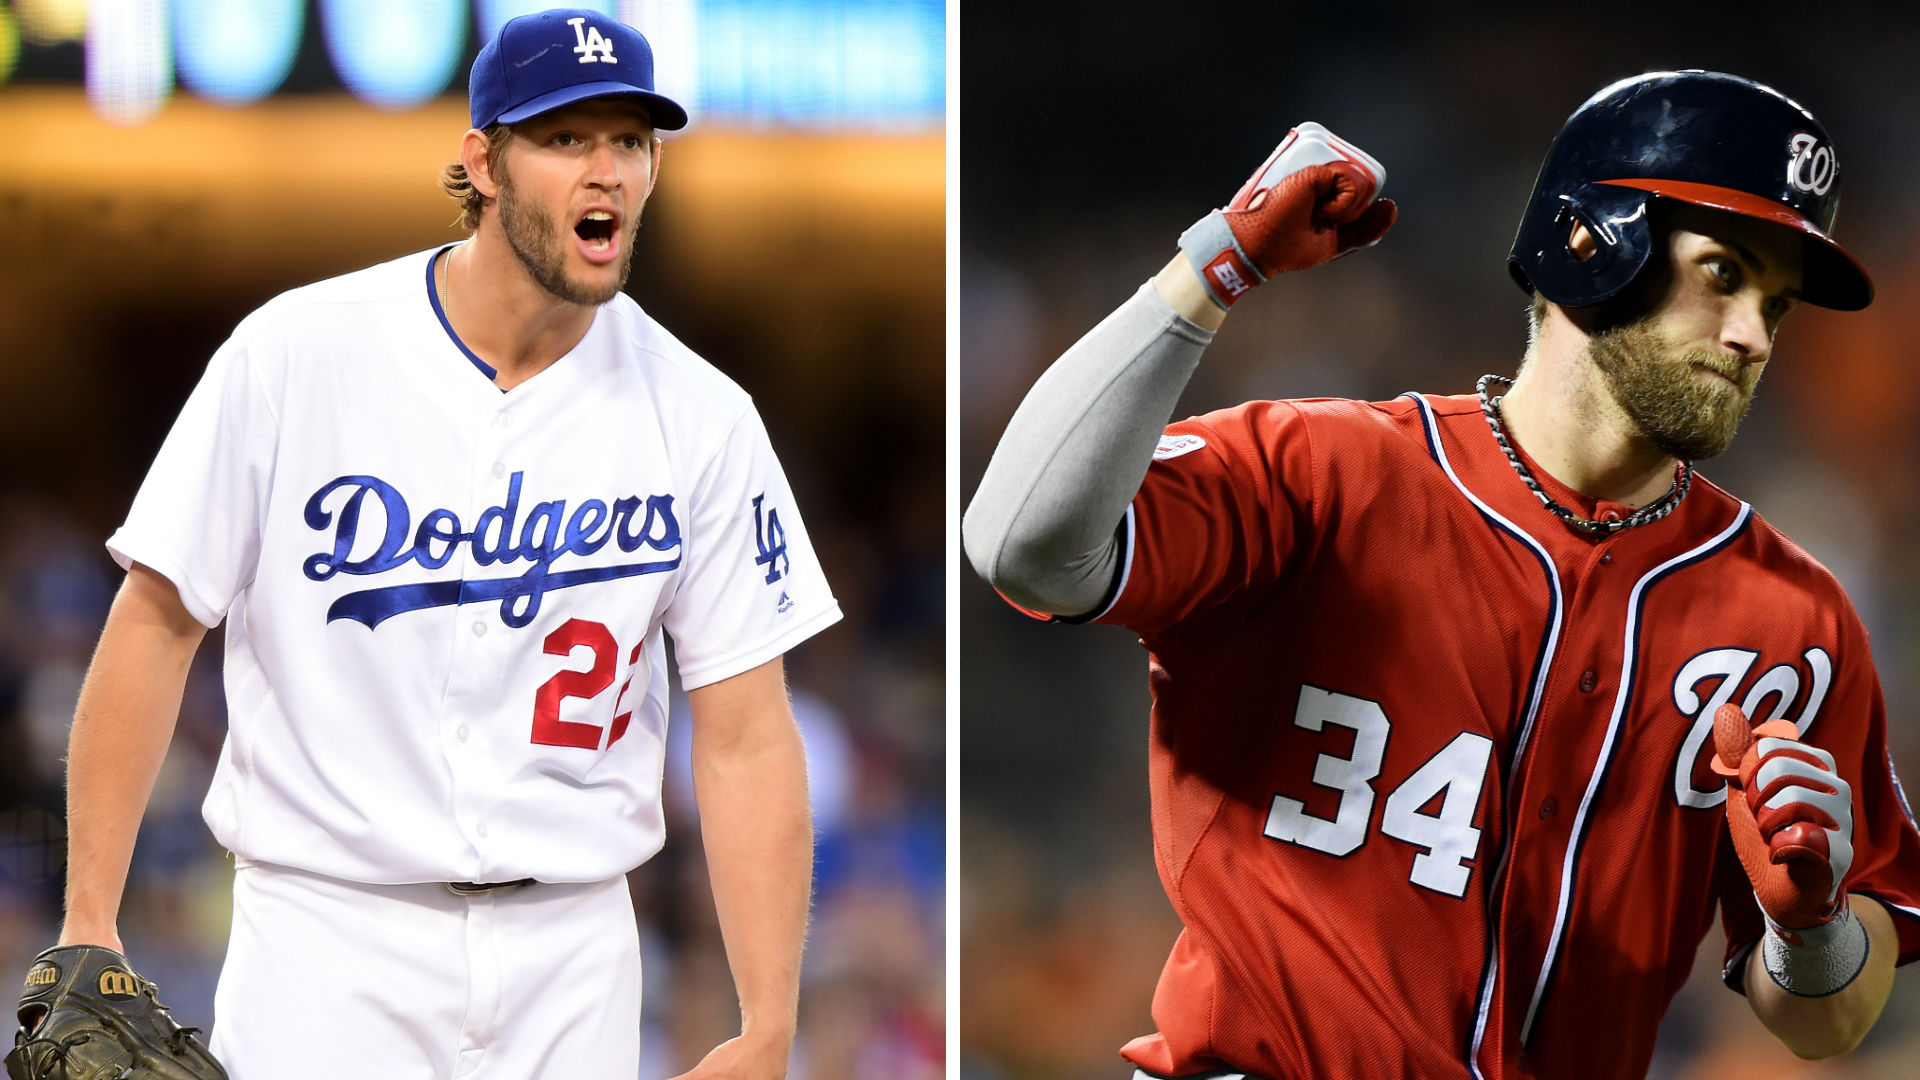 mlb playoffs 2016: dodgers-nationals nlds tv schedule, players to